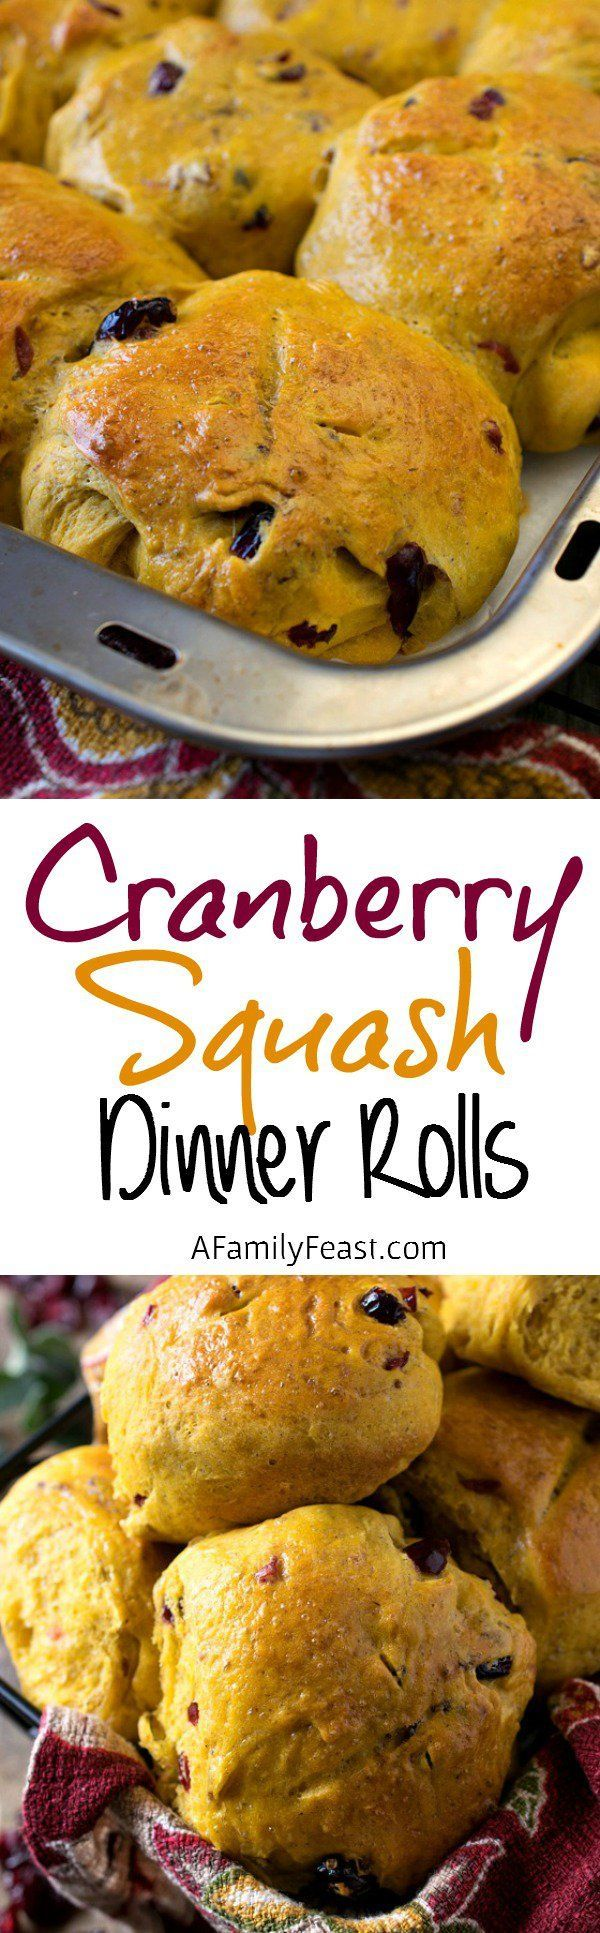 Cranberry Squash Dinner Rolls - Easy to make dinner rolls with great flavors and a soft, dense texture.